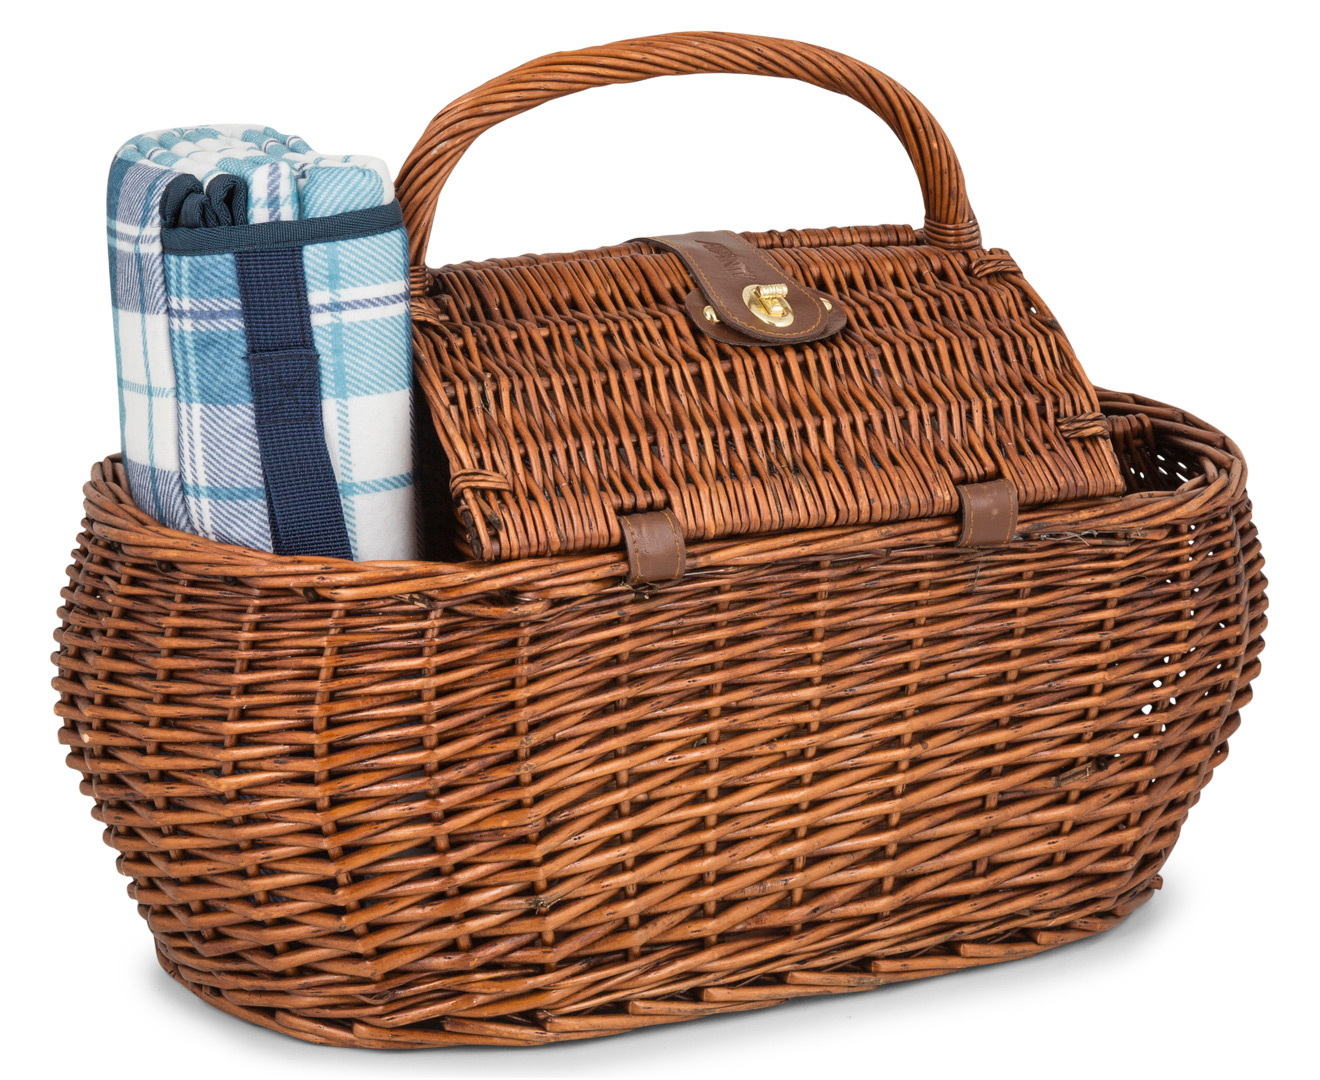 Aldi Picnic Basket Australia : Avanti person picnic basket light brown willow blue